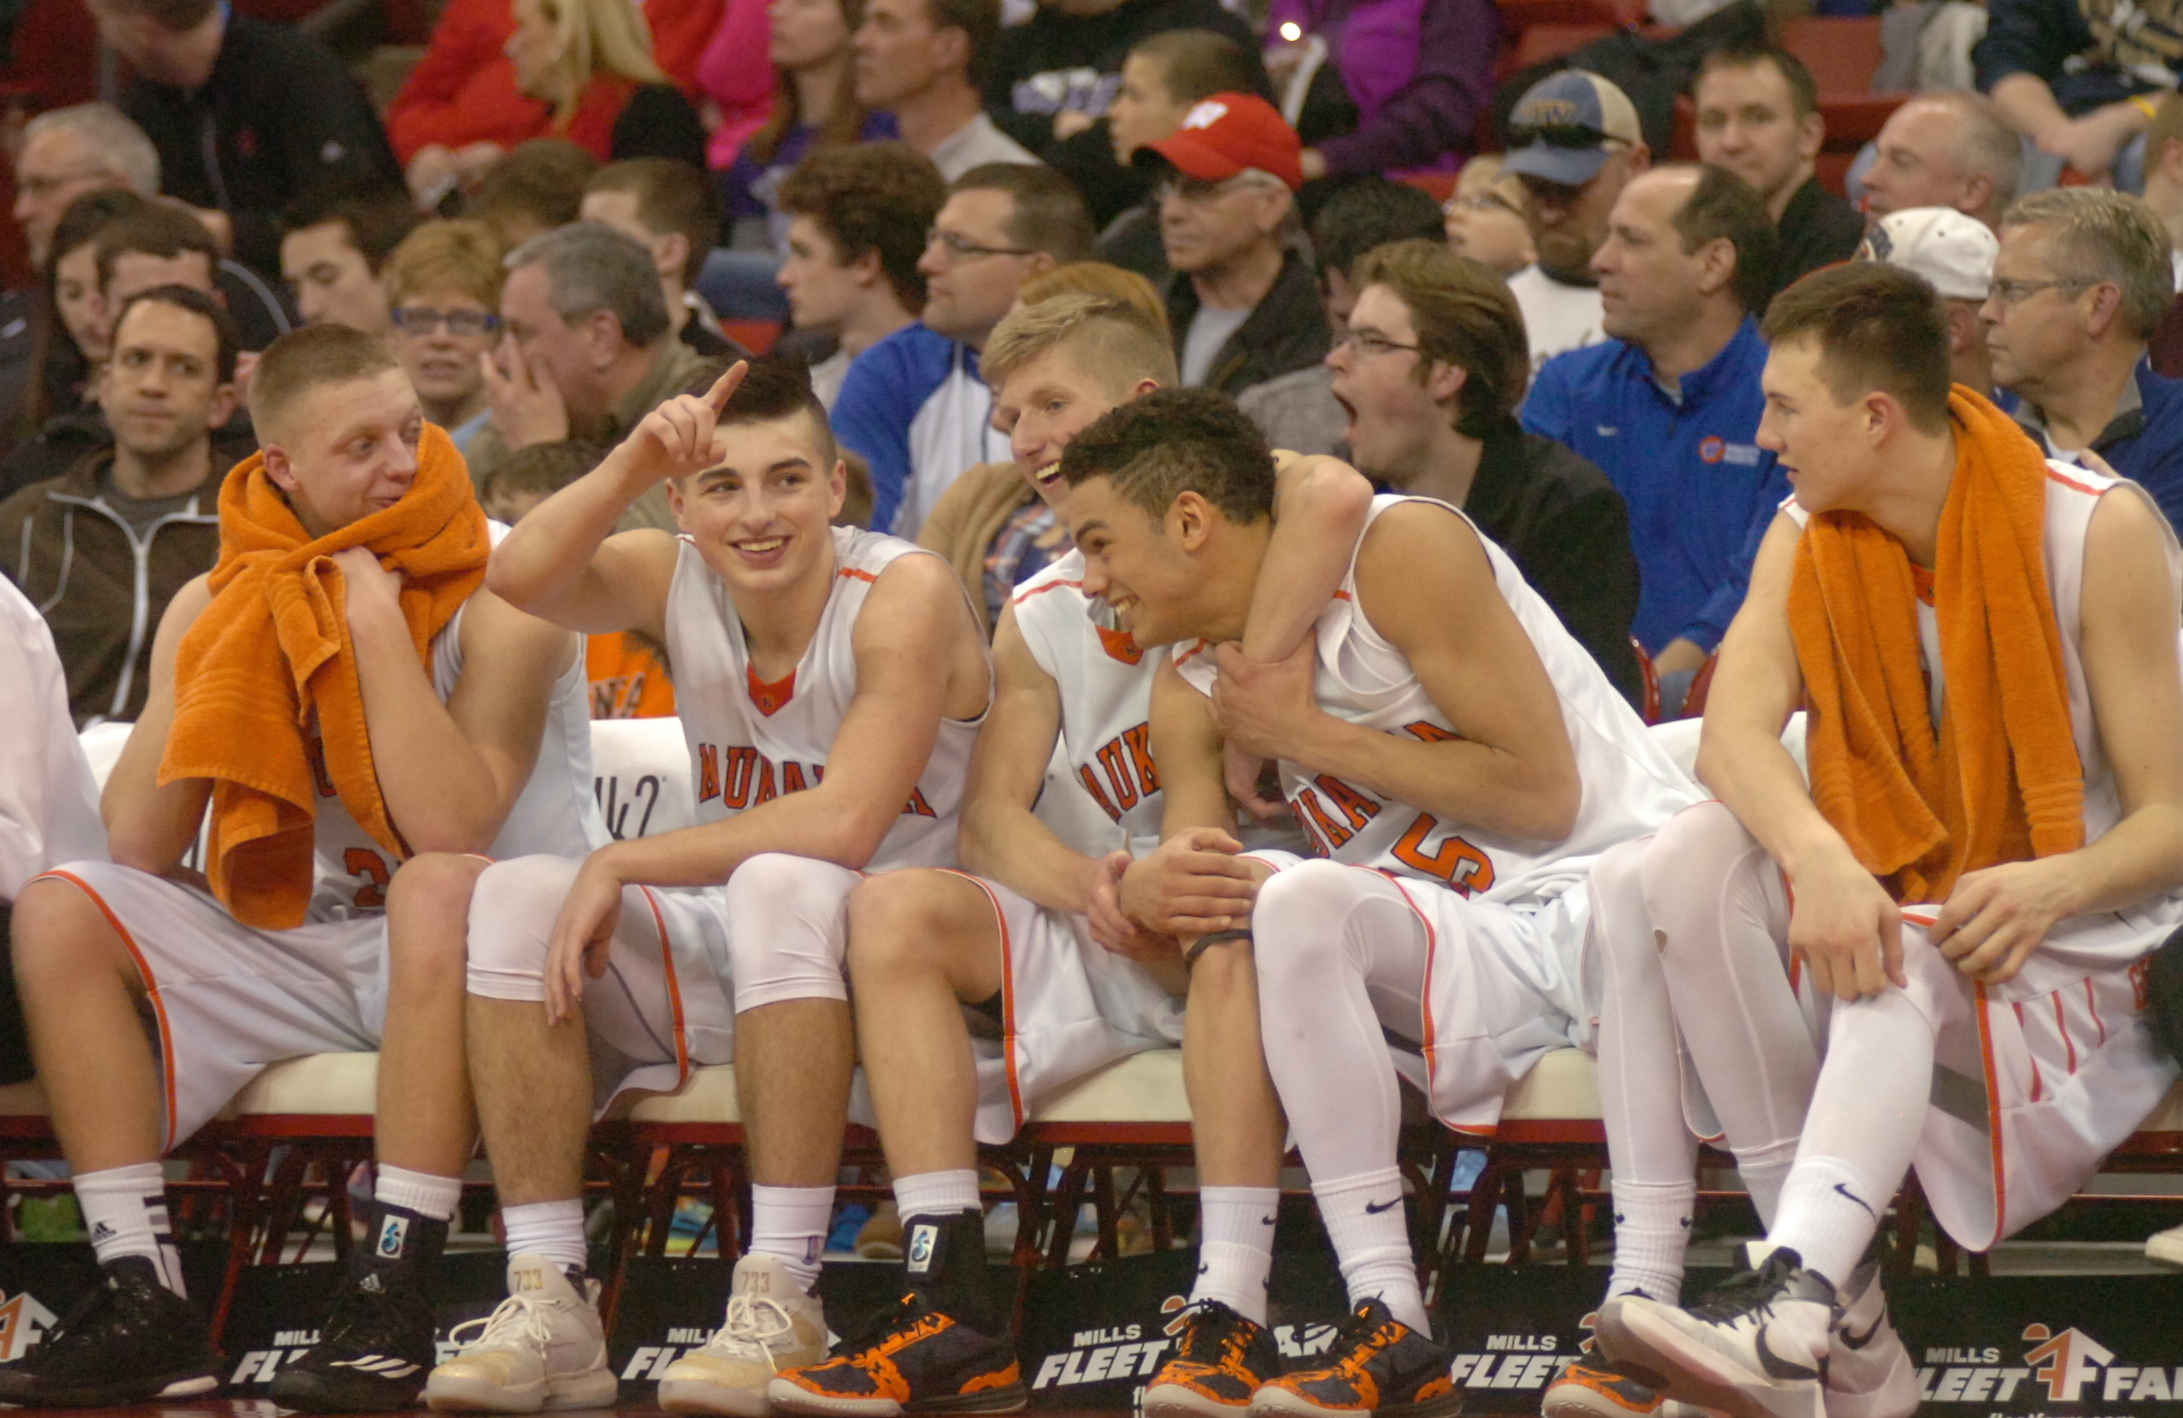 Kaukauna starts to celebrate in the closing minutes of the WIAA Division 2 championship game. Dan Plutchak/photo